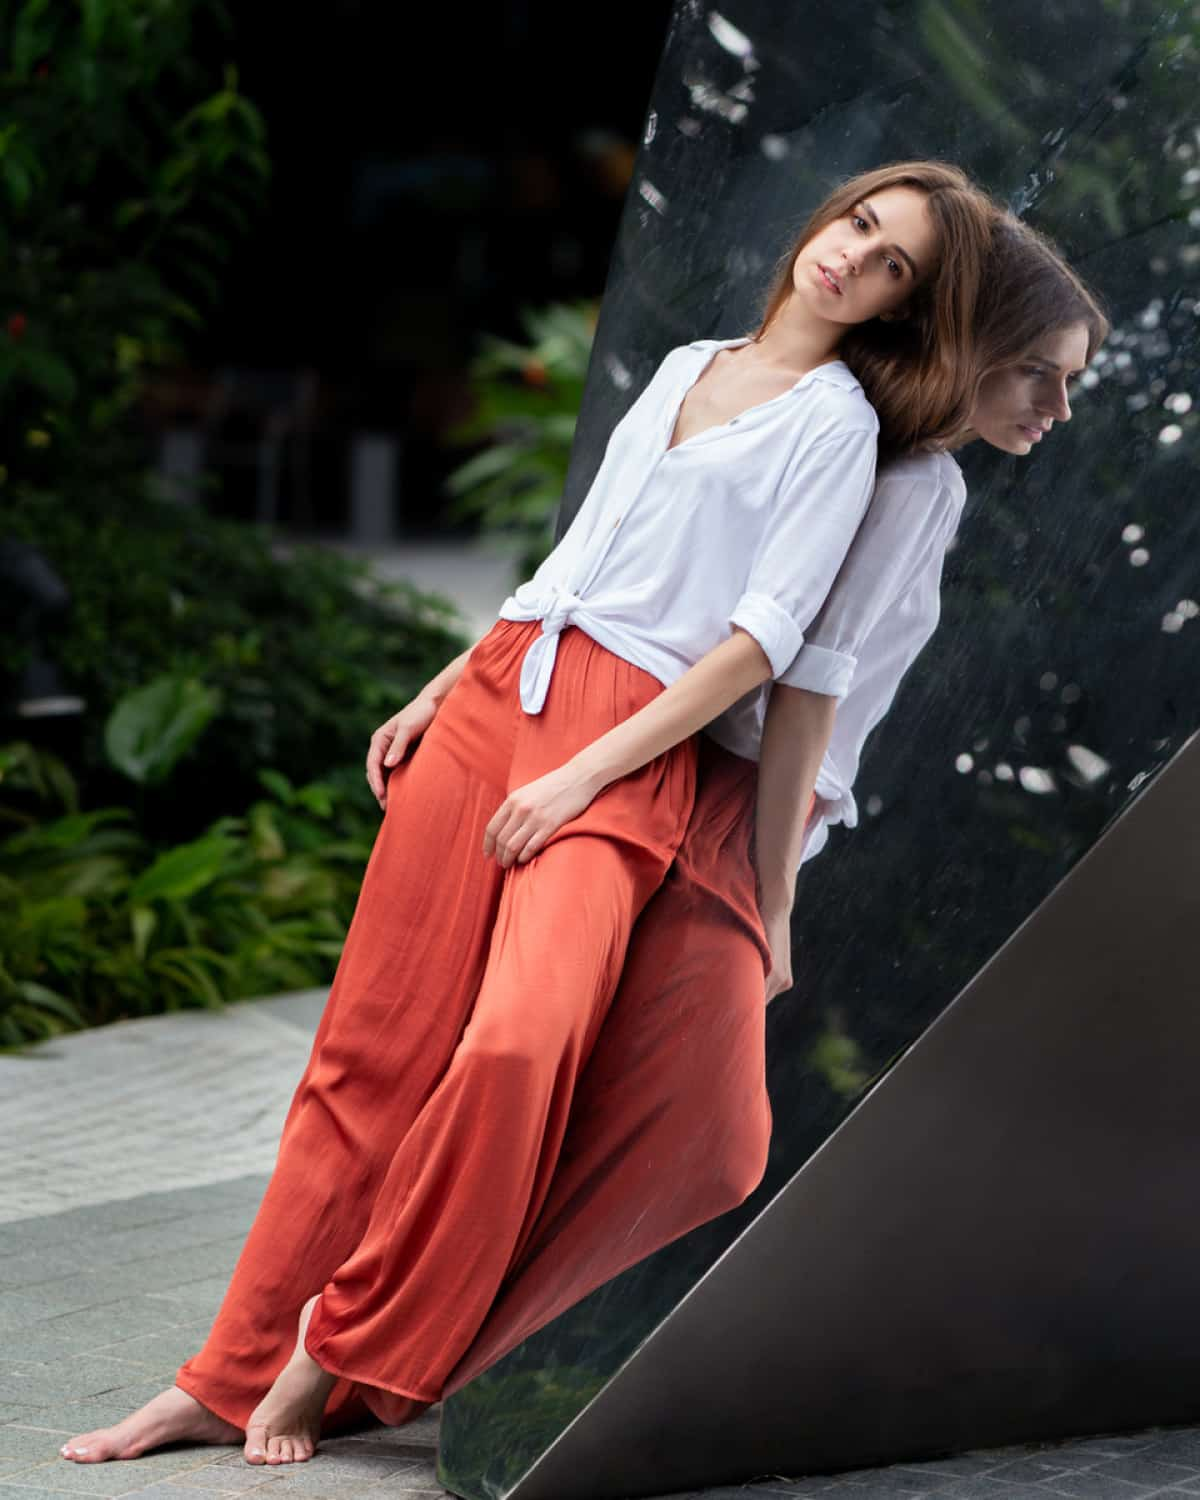 portrait photography singapore the woman is leaning on a reflective wall